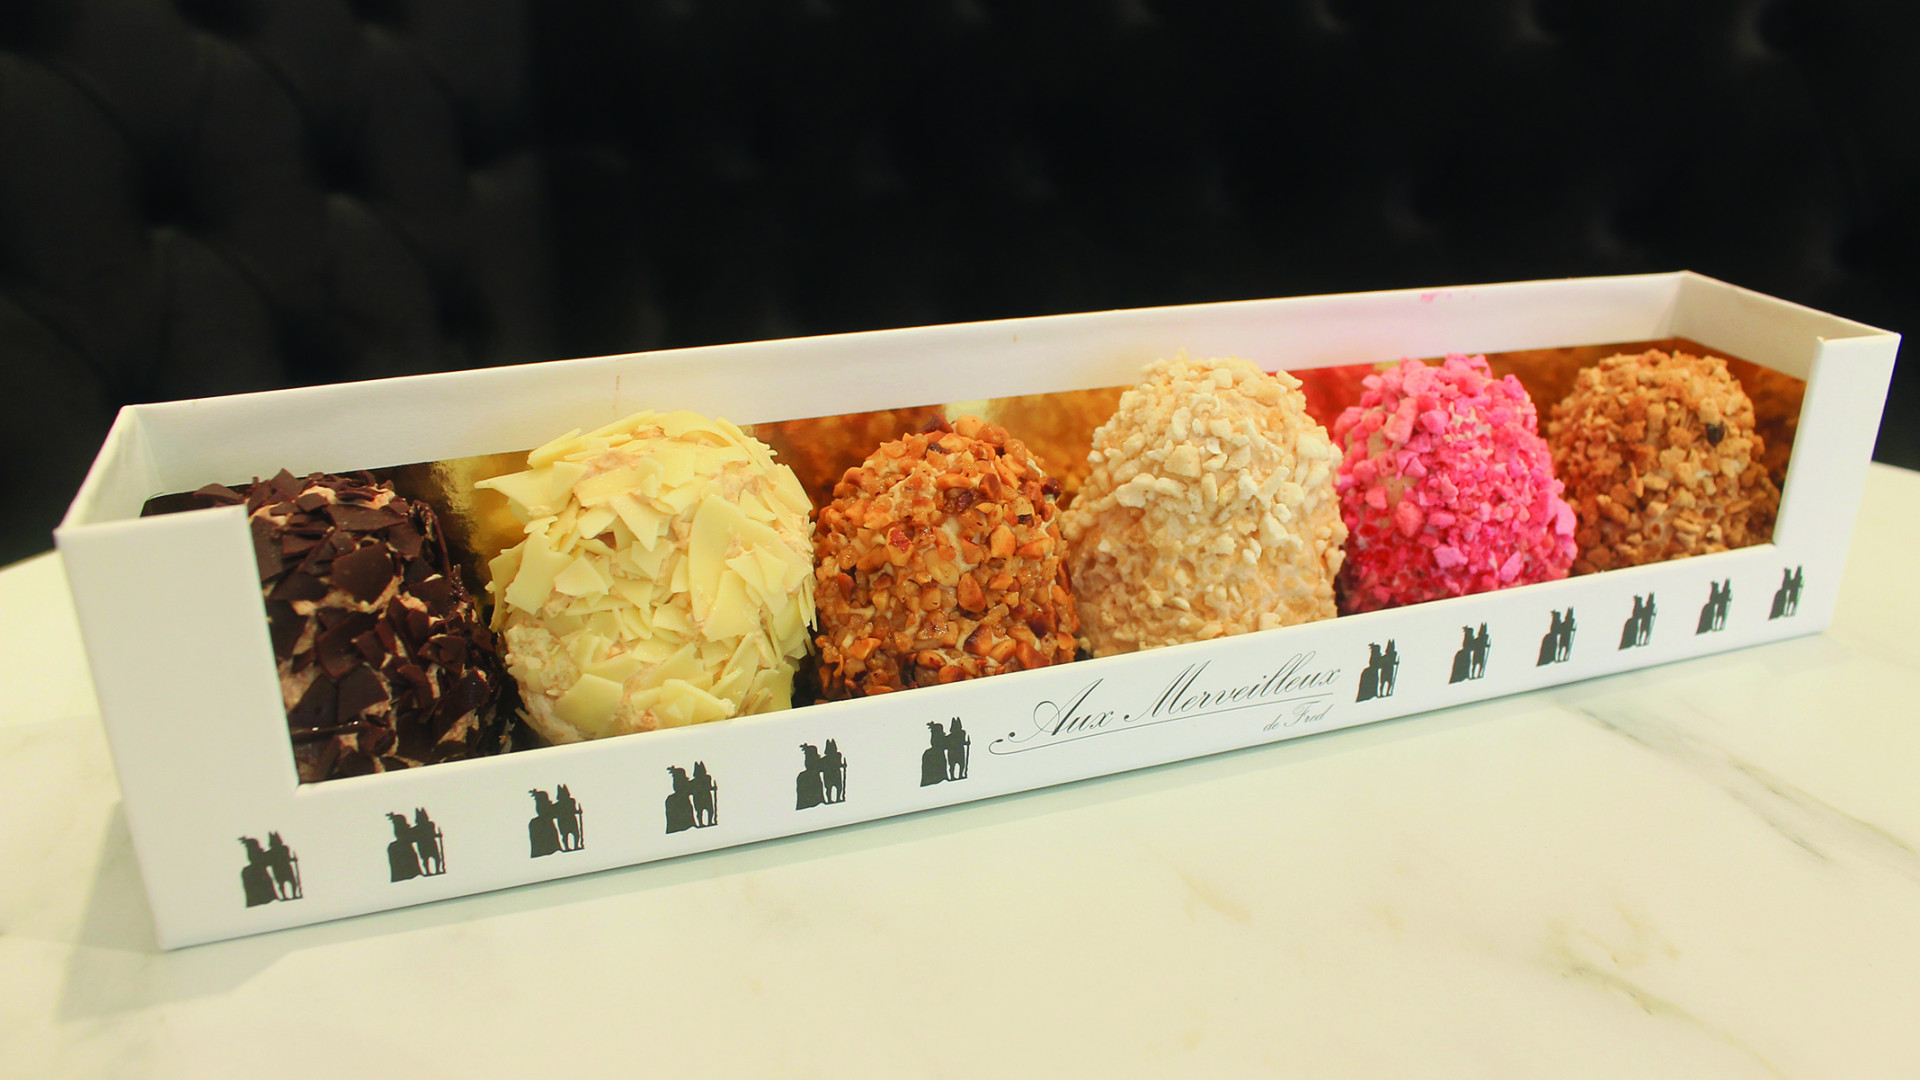 Toronto's French Bakery Marvelous by Fred | Gift box of assorted French pastries